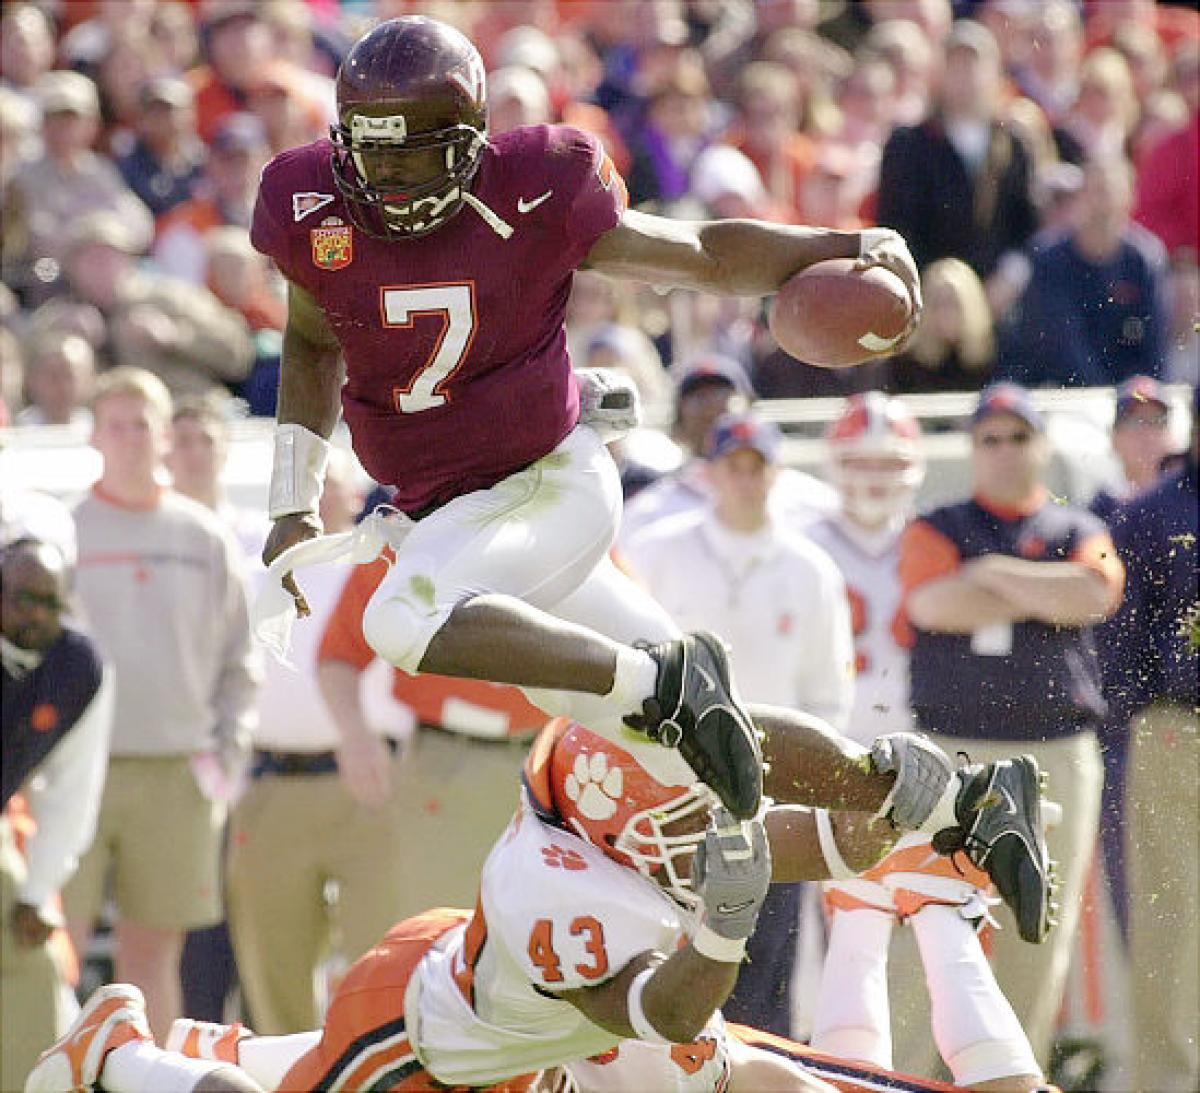 Michael Vick's Legacy Should Have Gotten Him Into VT Hall of Fame Sooner